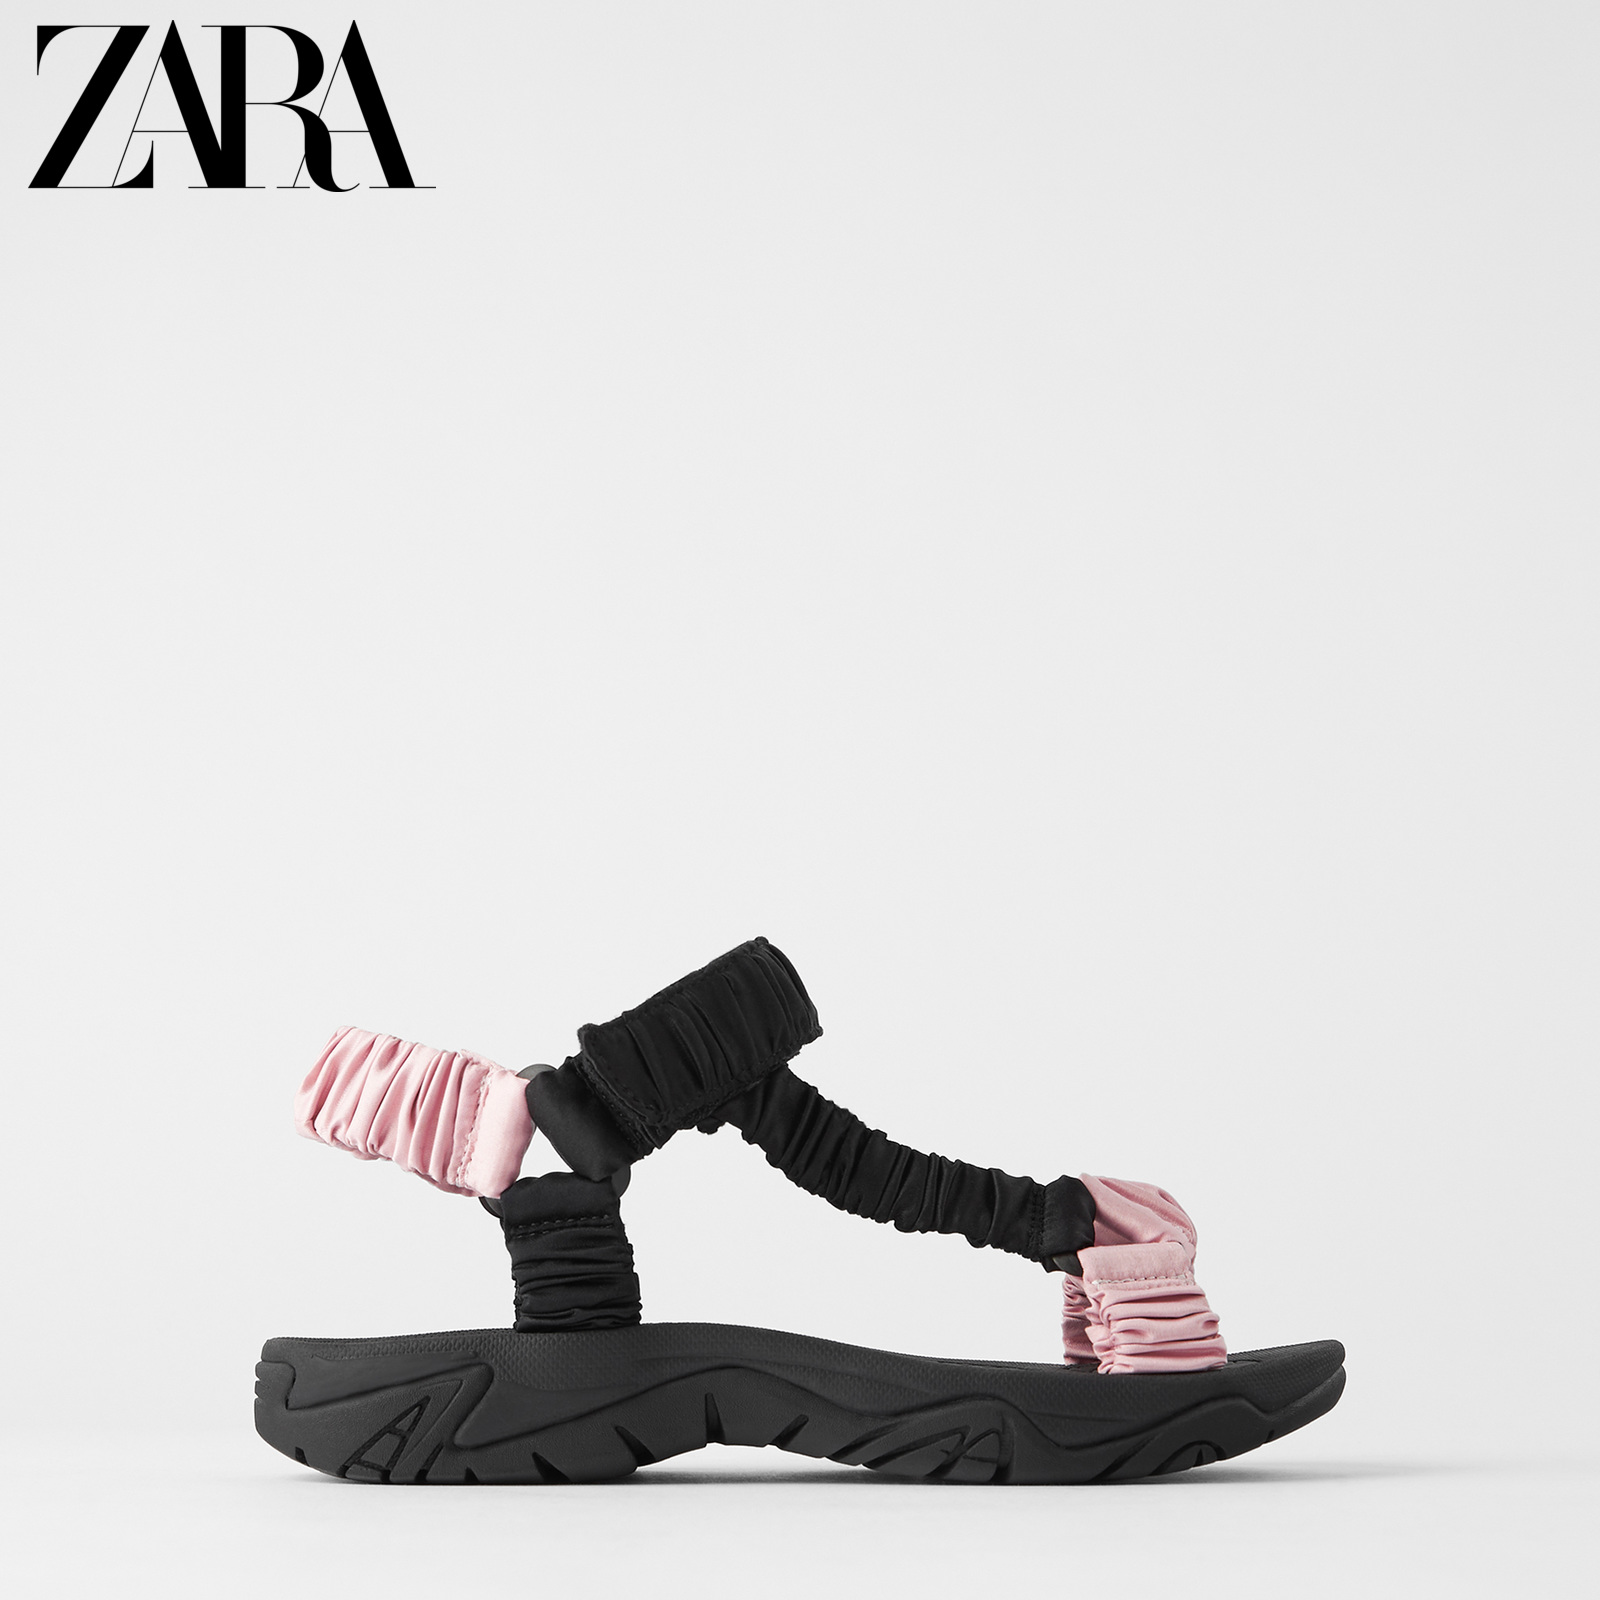 Zara new TRF women's shoes with bowknot and satin sports flat sandals 13878510202